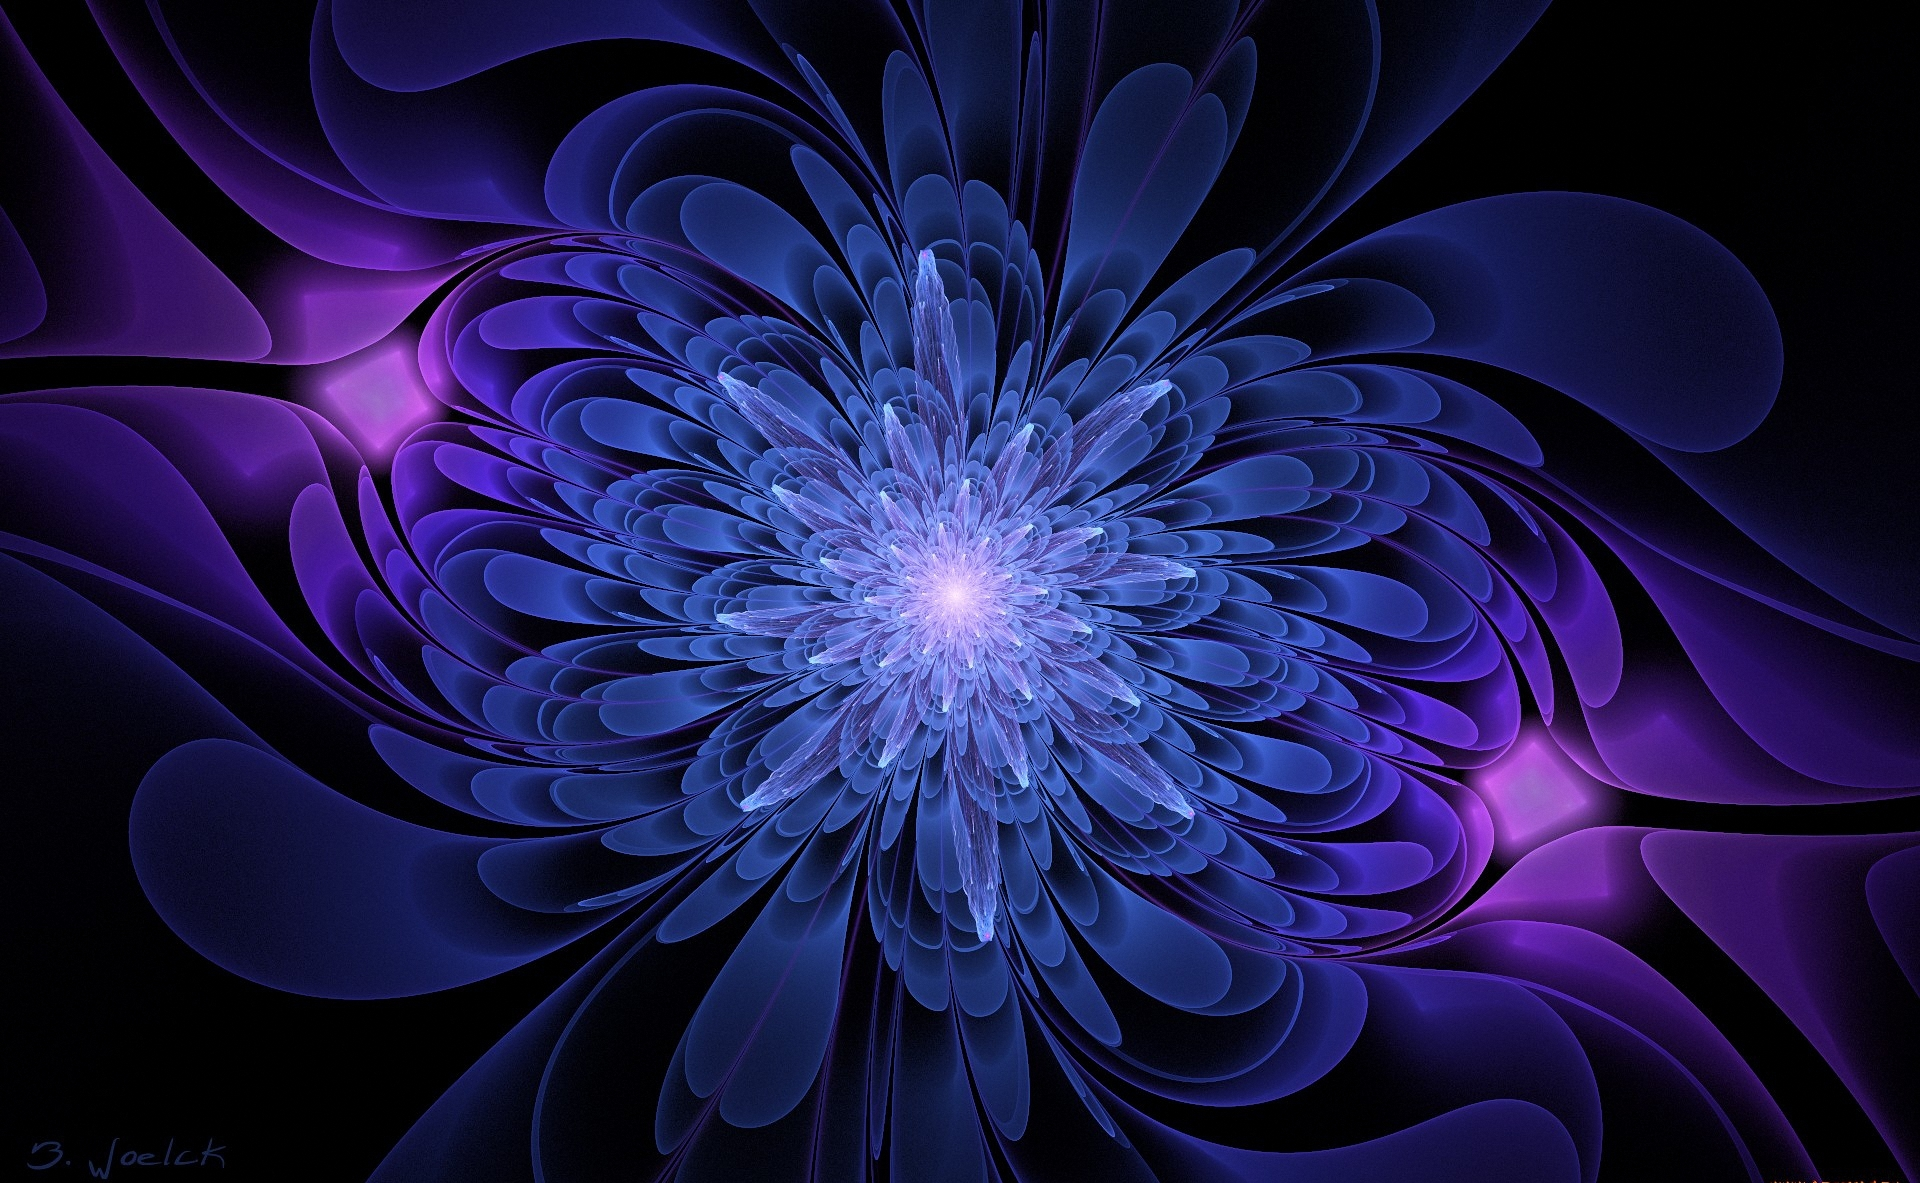 Black background blue and serenevy color graphics flower